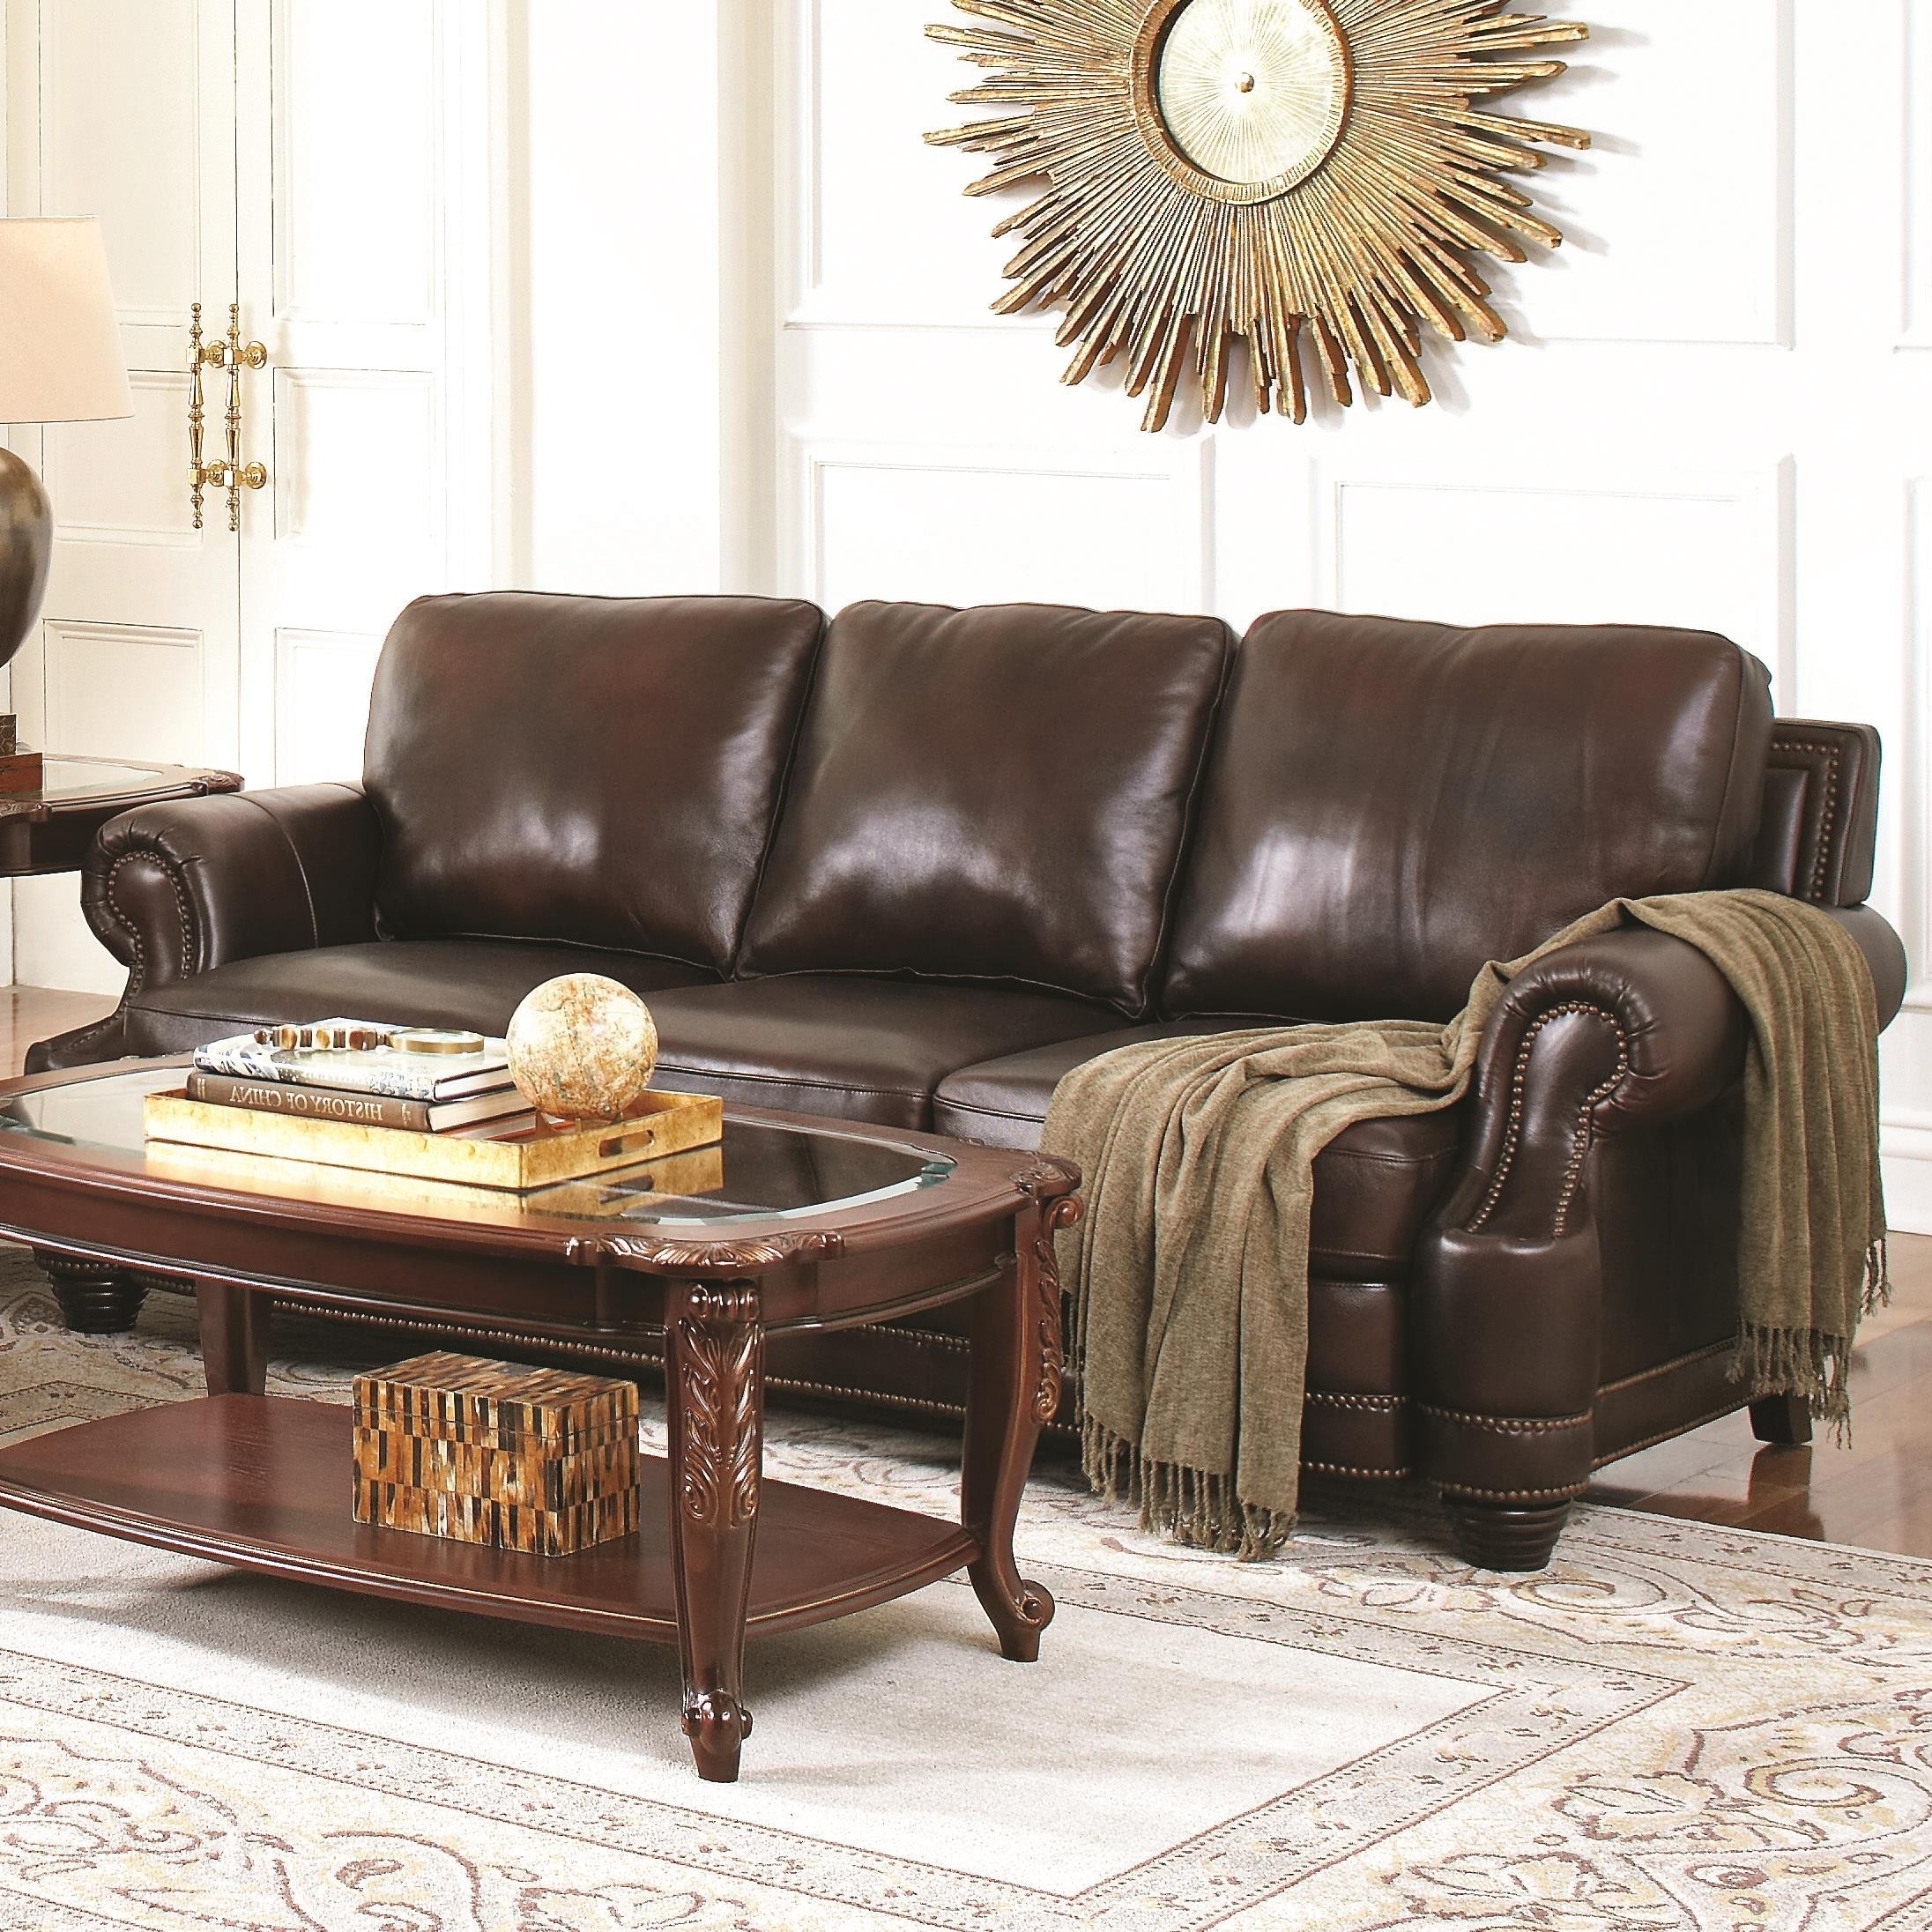 Jinanhongyu Throughout Sears Sofas (Gallery 16 of 20)